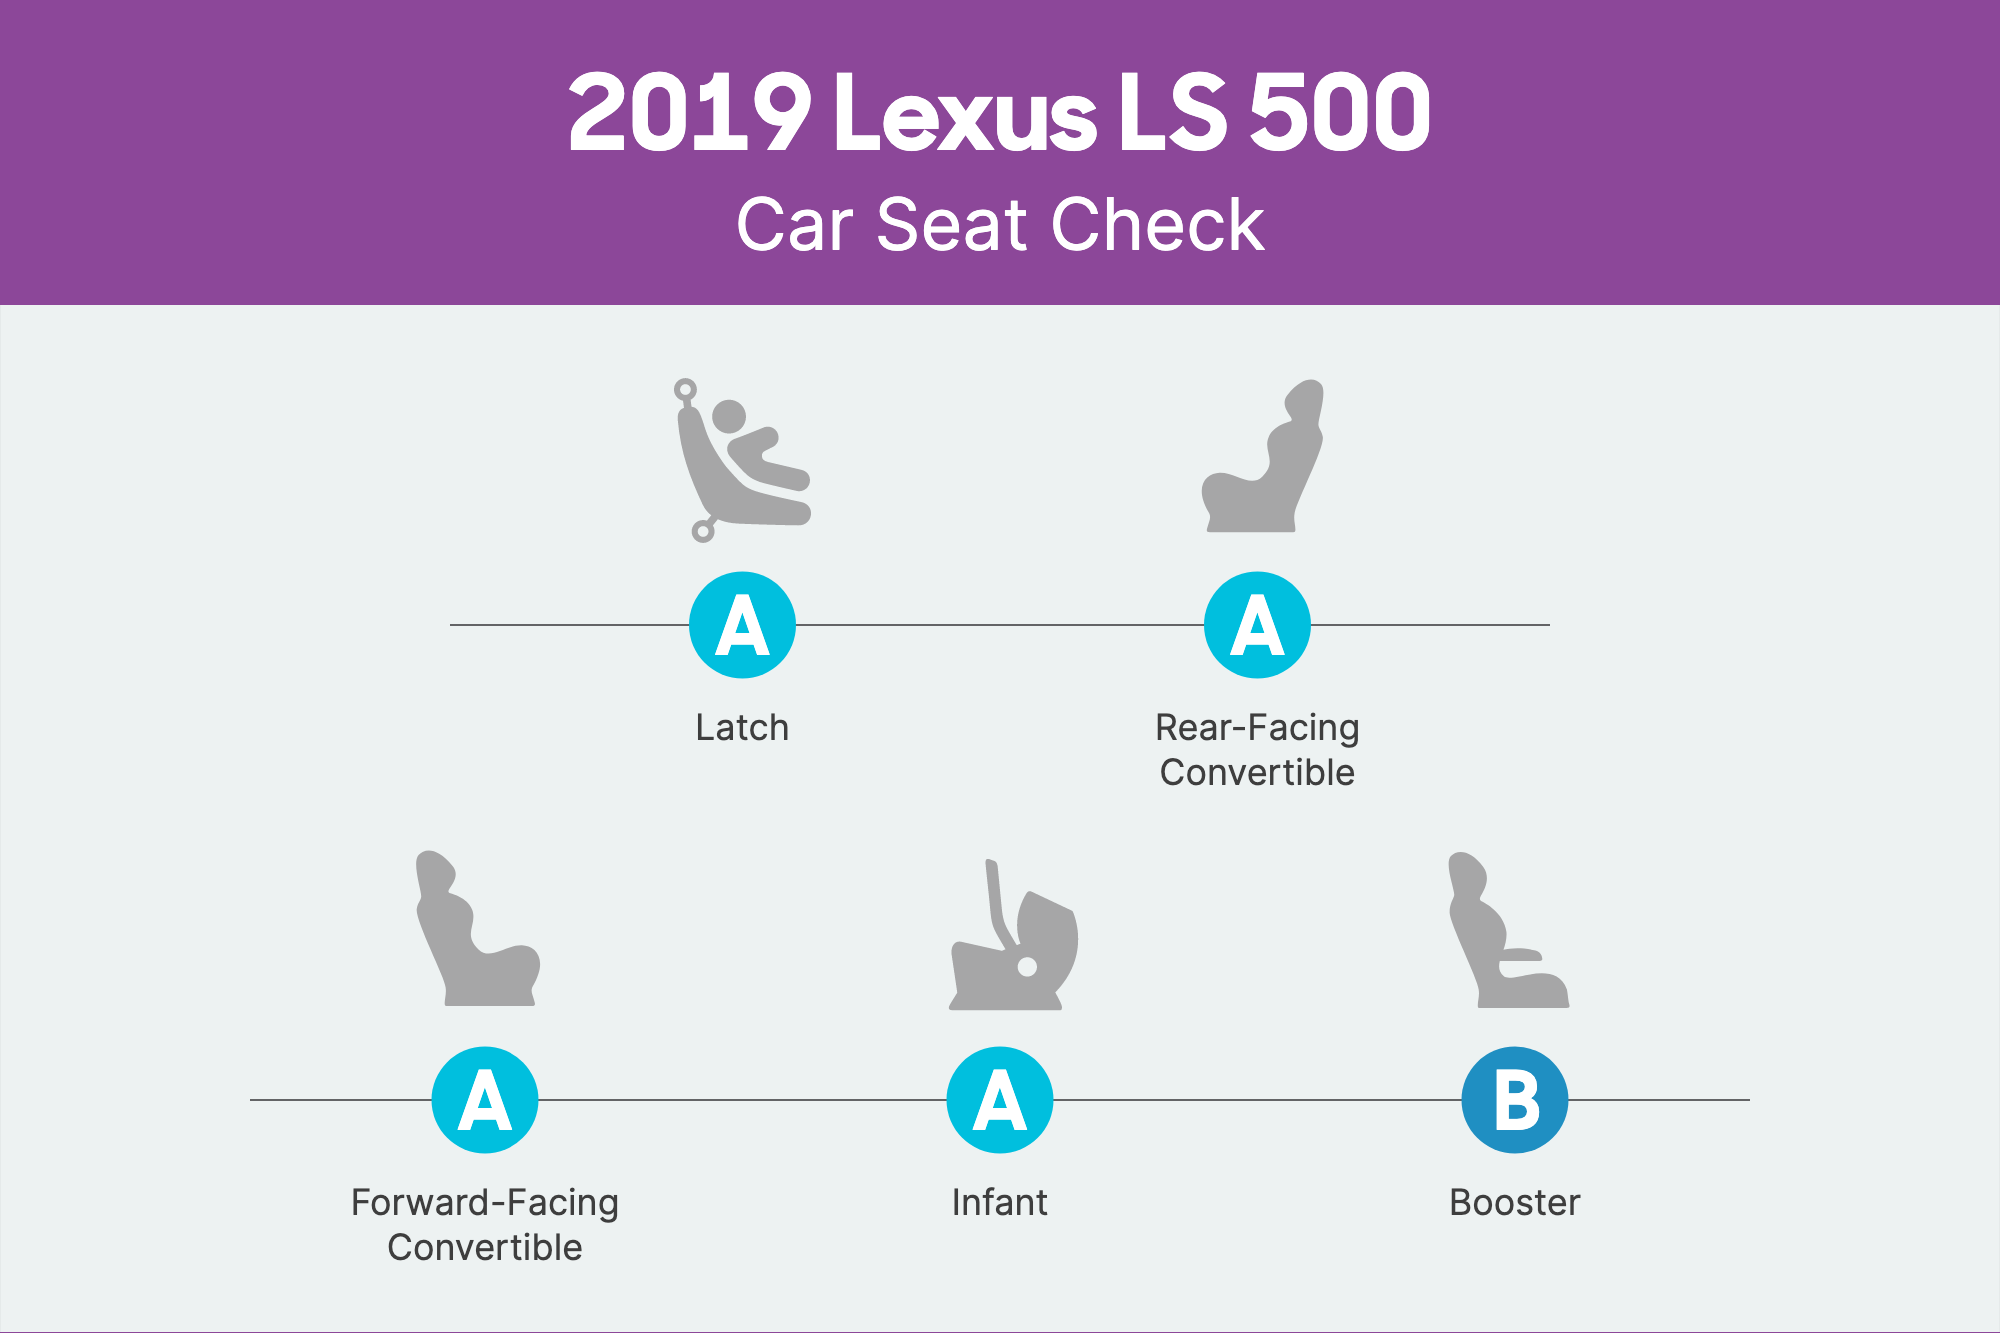 How Do Car Seats Fit in a 2019 Lexus LS 500?